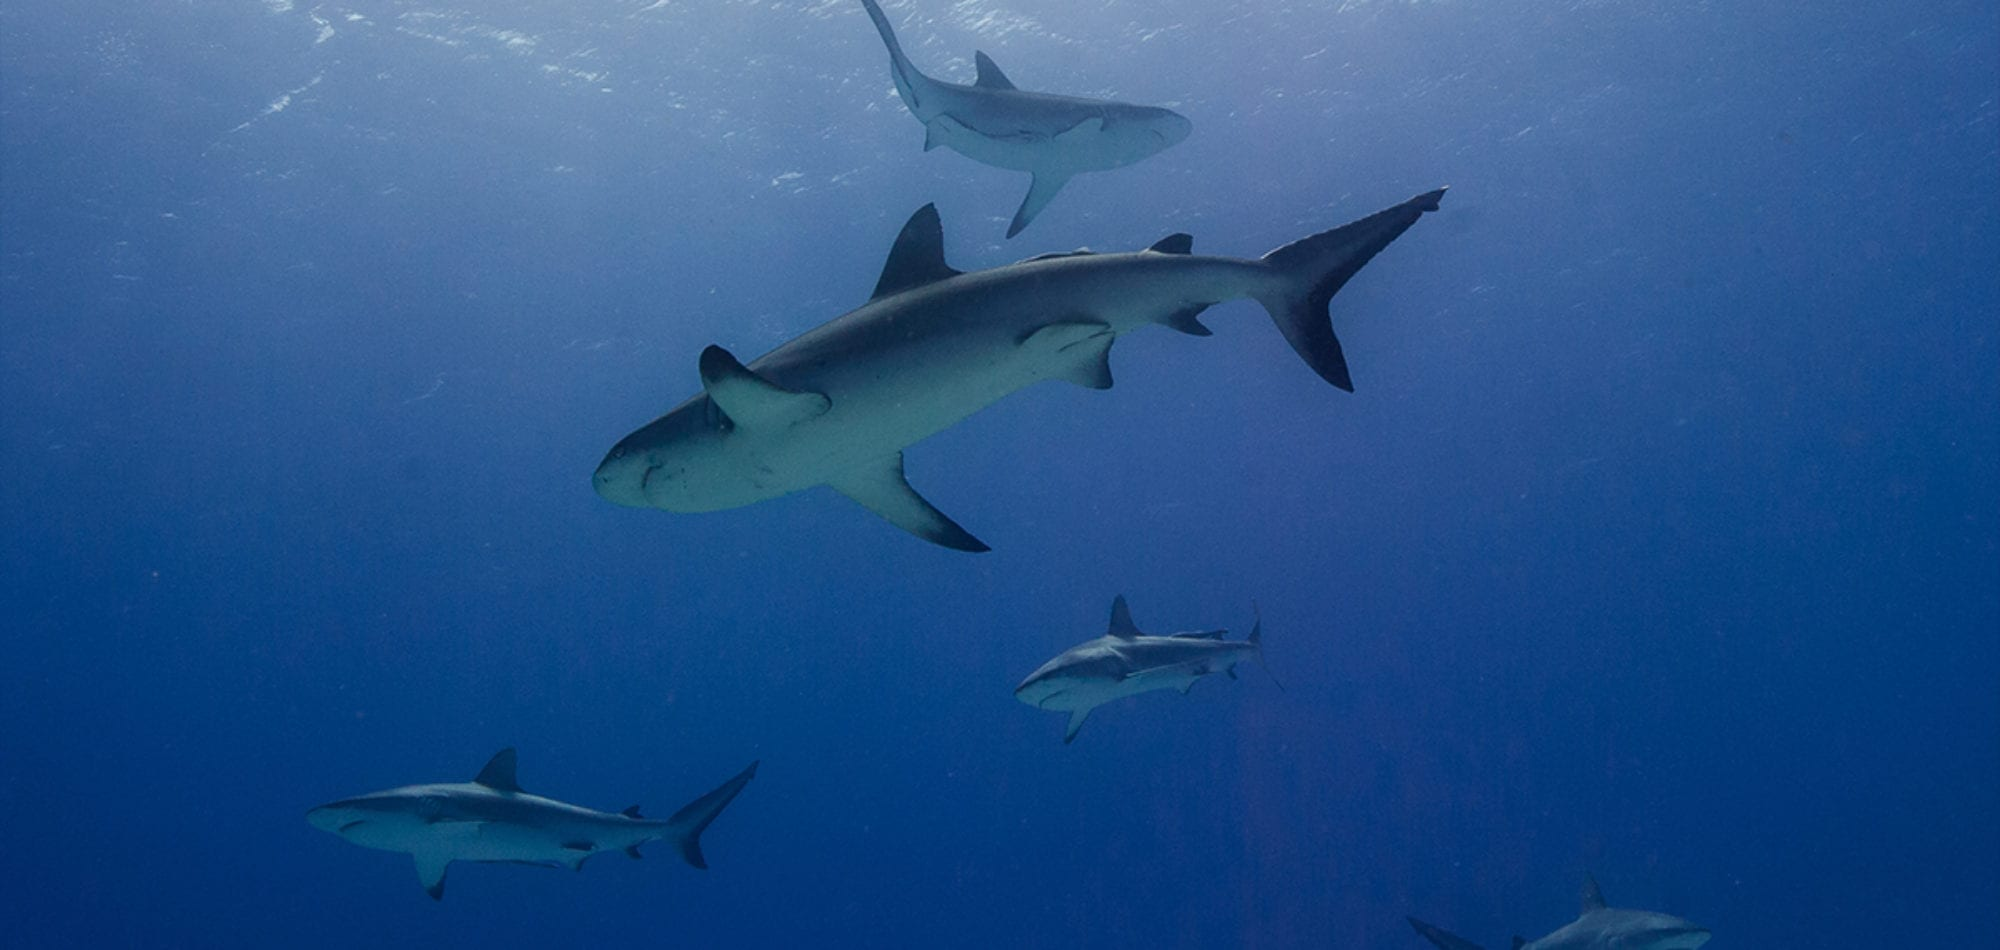 Cairns liveaboard scuba diving - scuba diving with reef sharks on the Great Barrier Reef